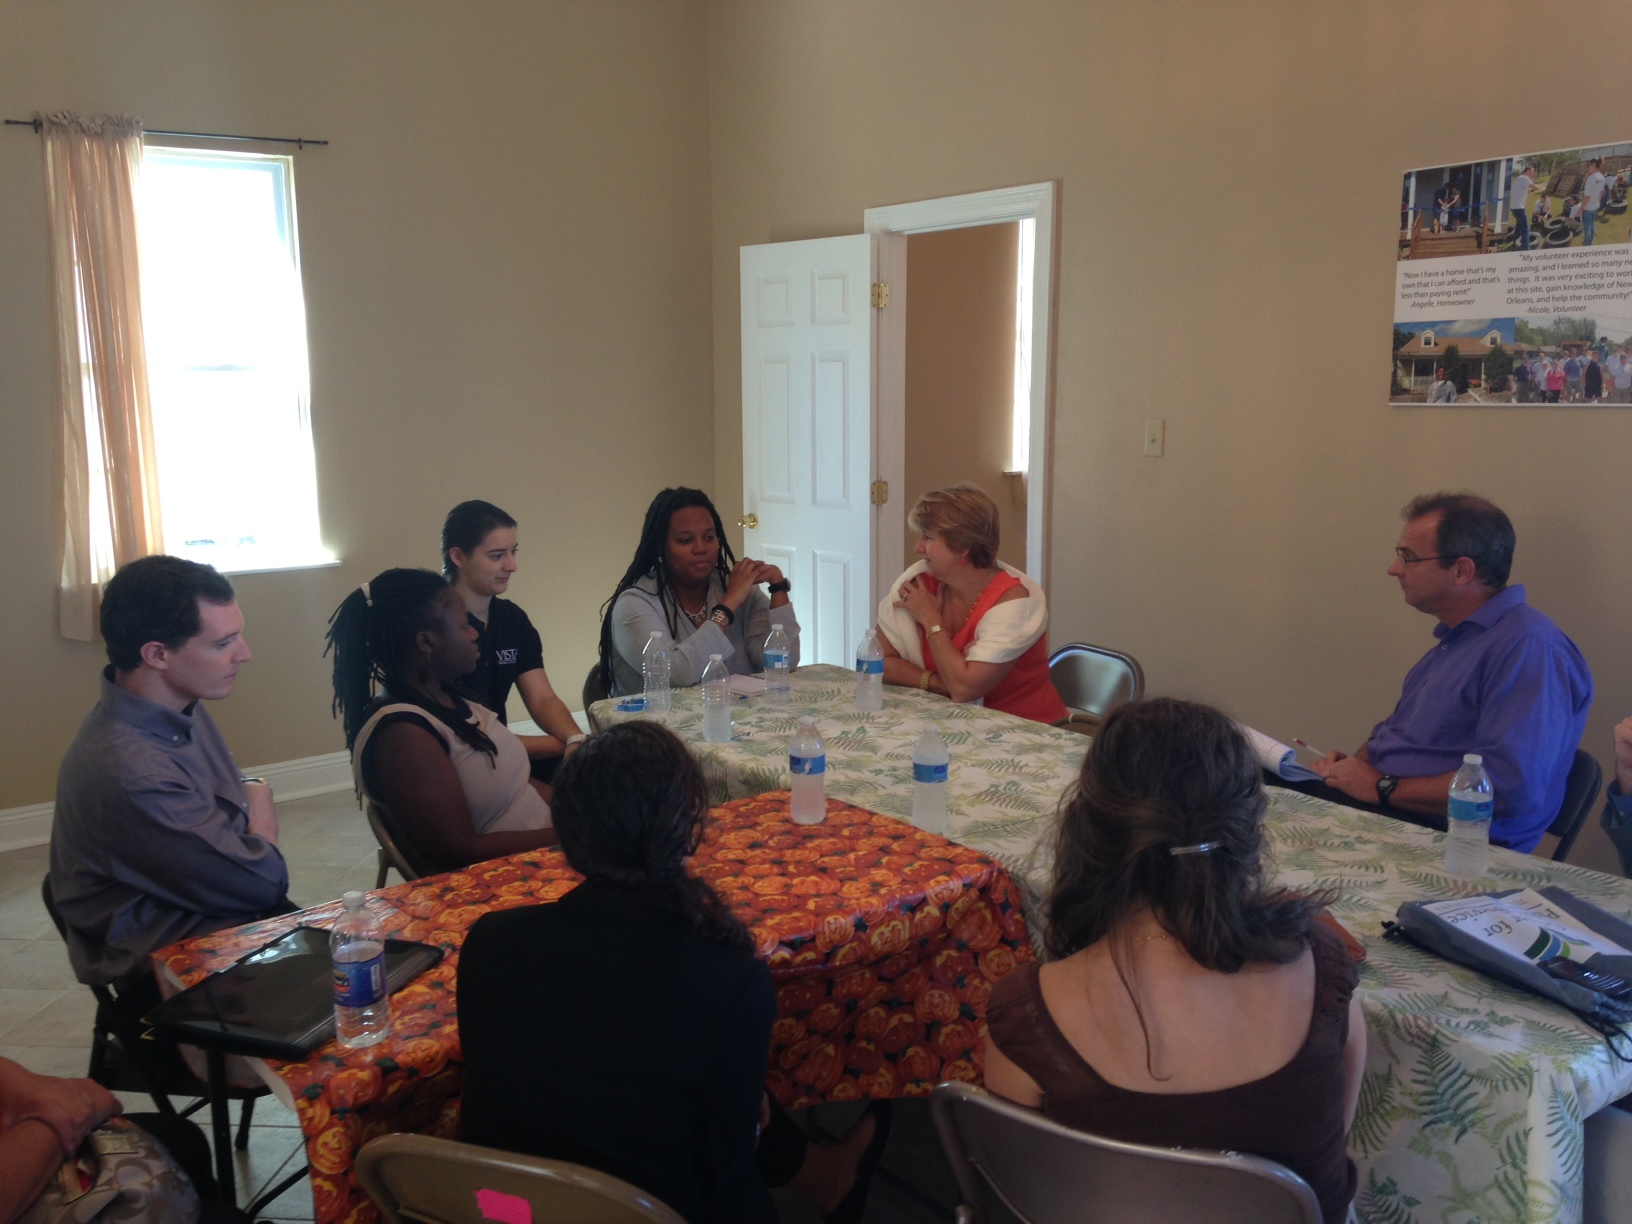 The roundtable in session.